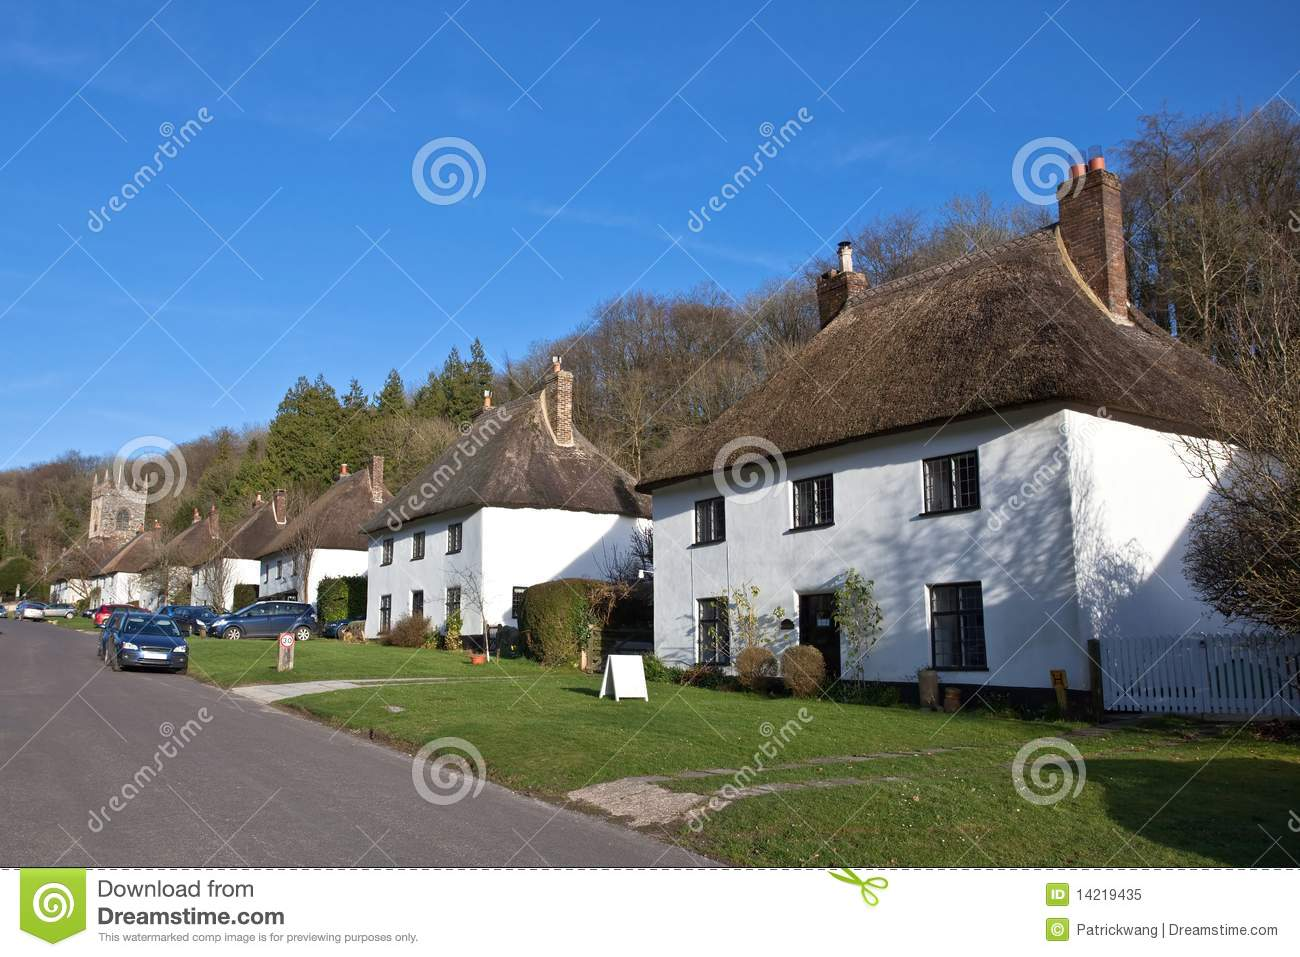 Thatched Roof Houses In English Village Royalty Free Stock